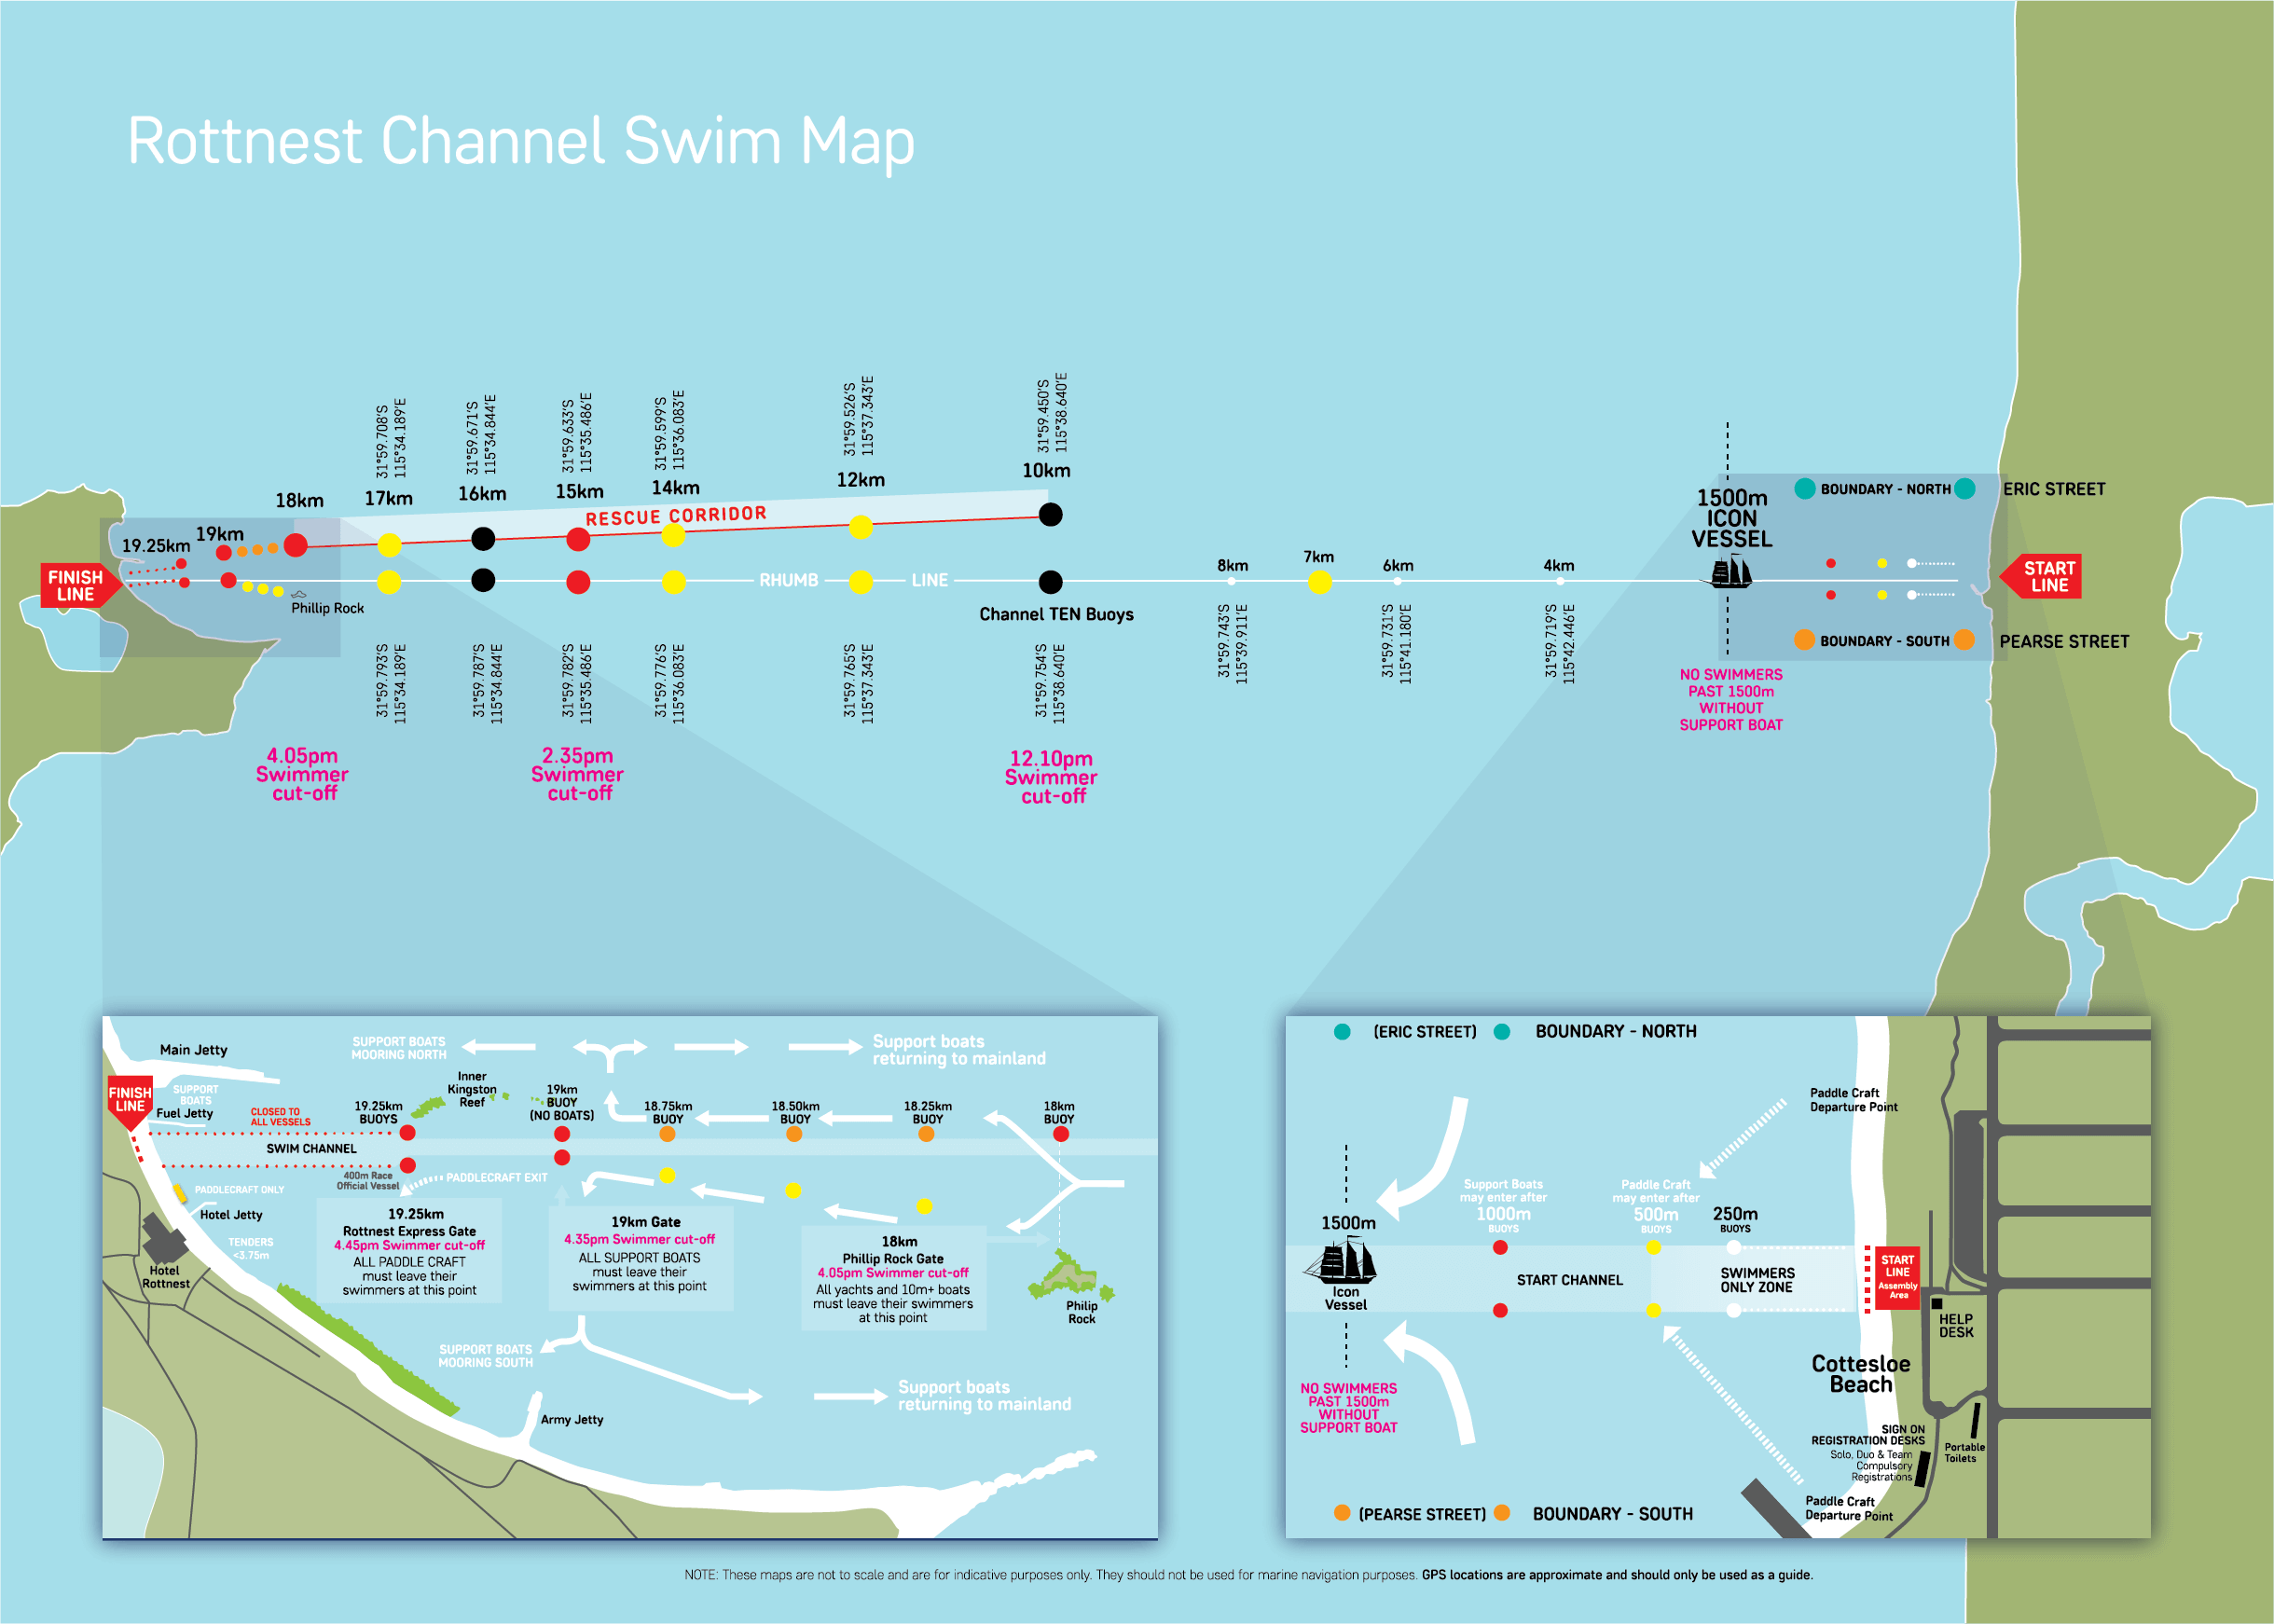 Course map for the Rottnest Channel Swim